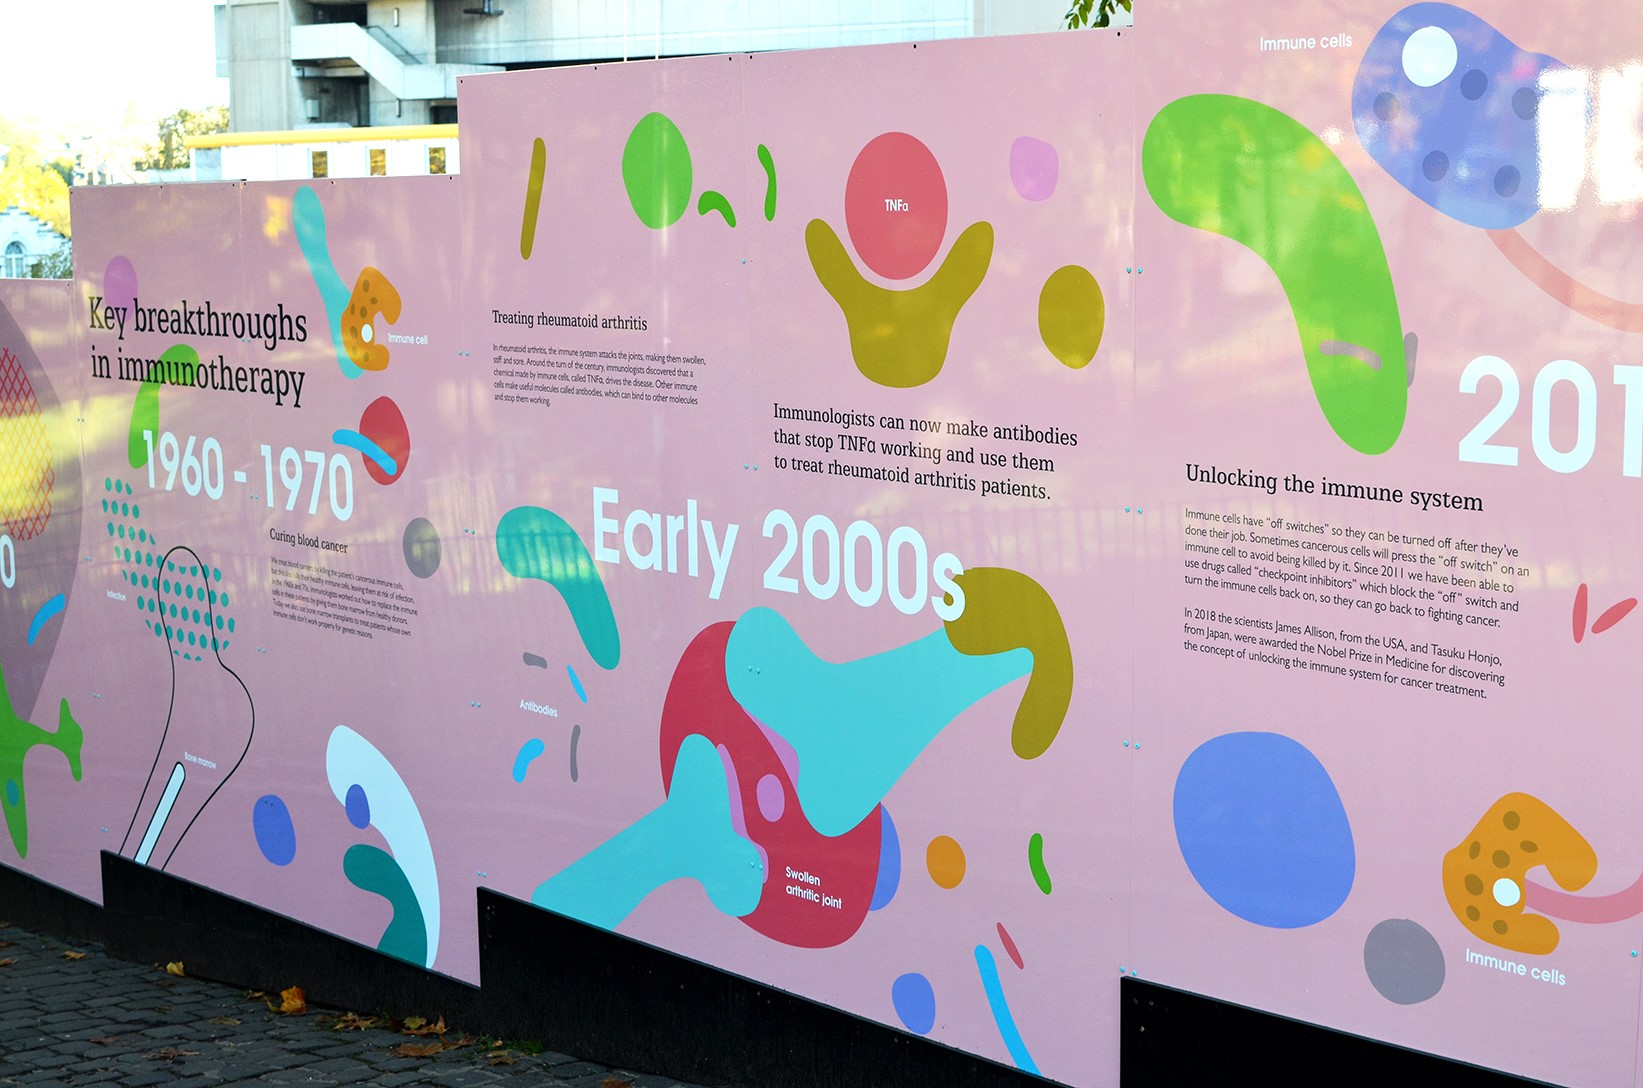 How graphic design is getting people excited about medical research and the immune system